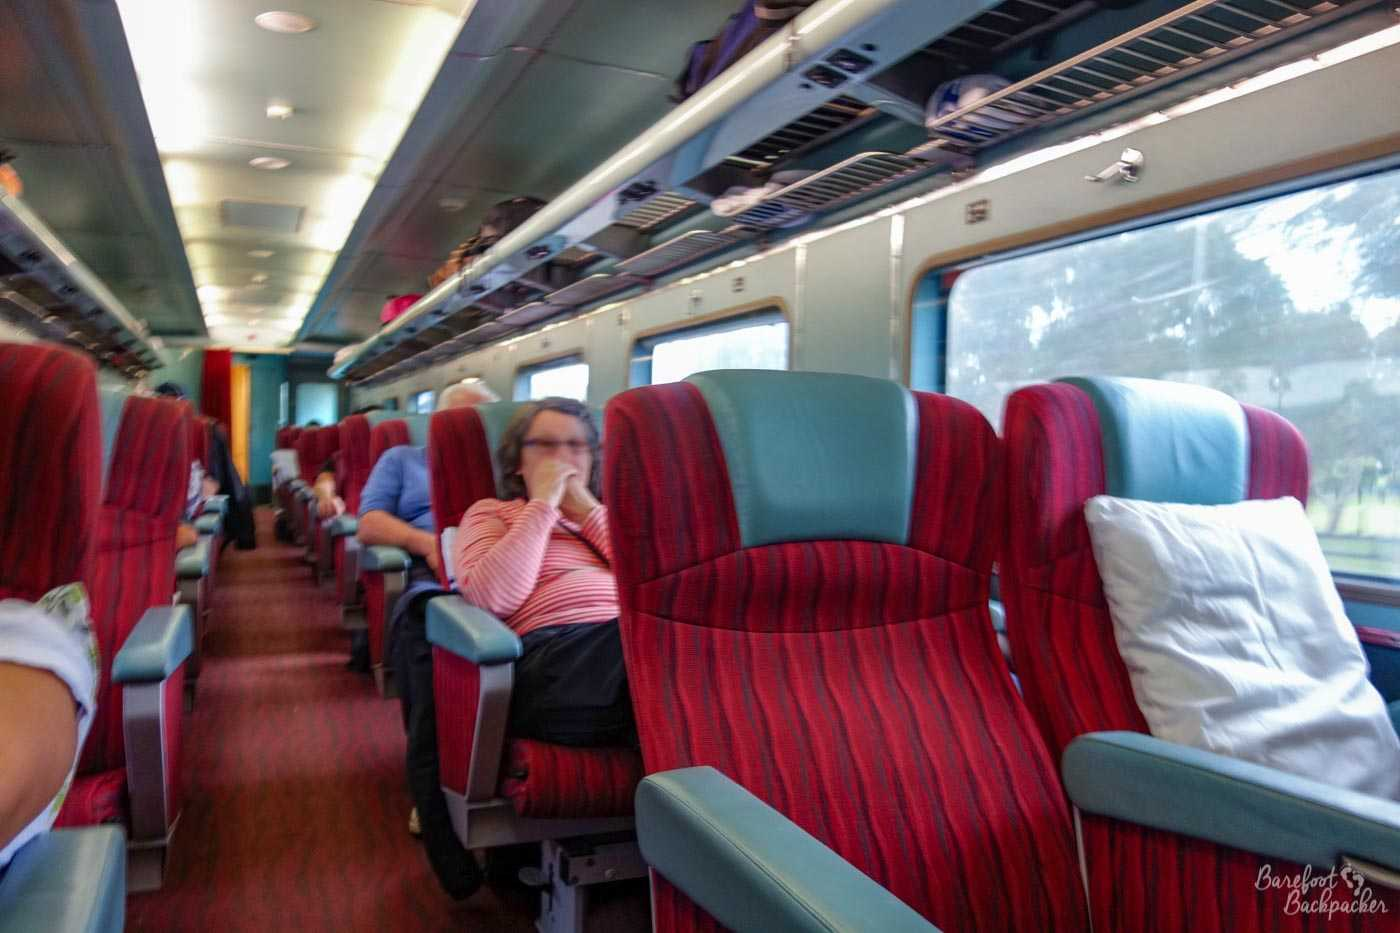 Inside the red Class carriage of the Indian Pacific. Looks a bit like a normal train carriage, with rows of seats separated by an aisle. Just more space between them.